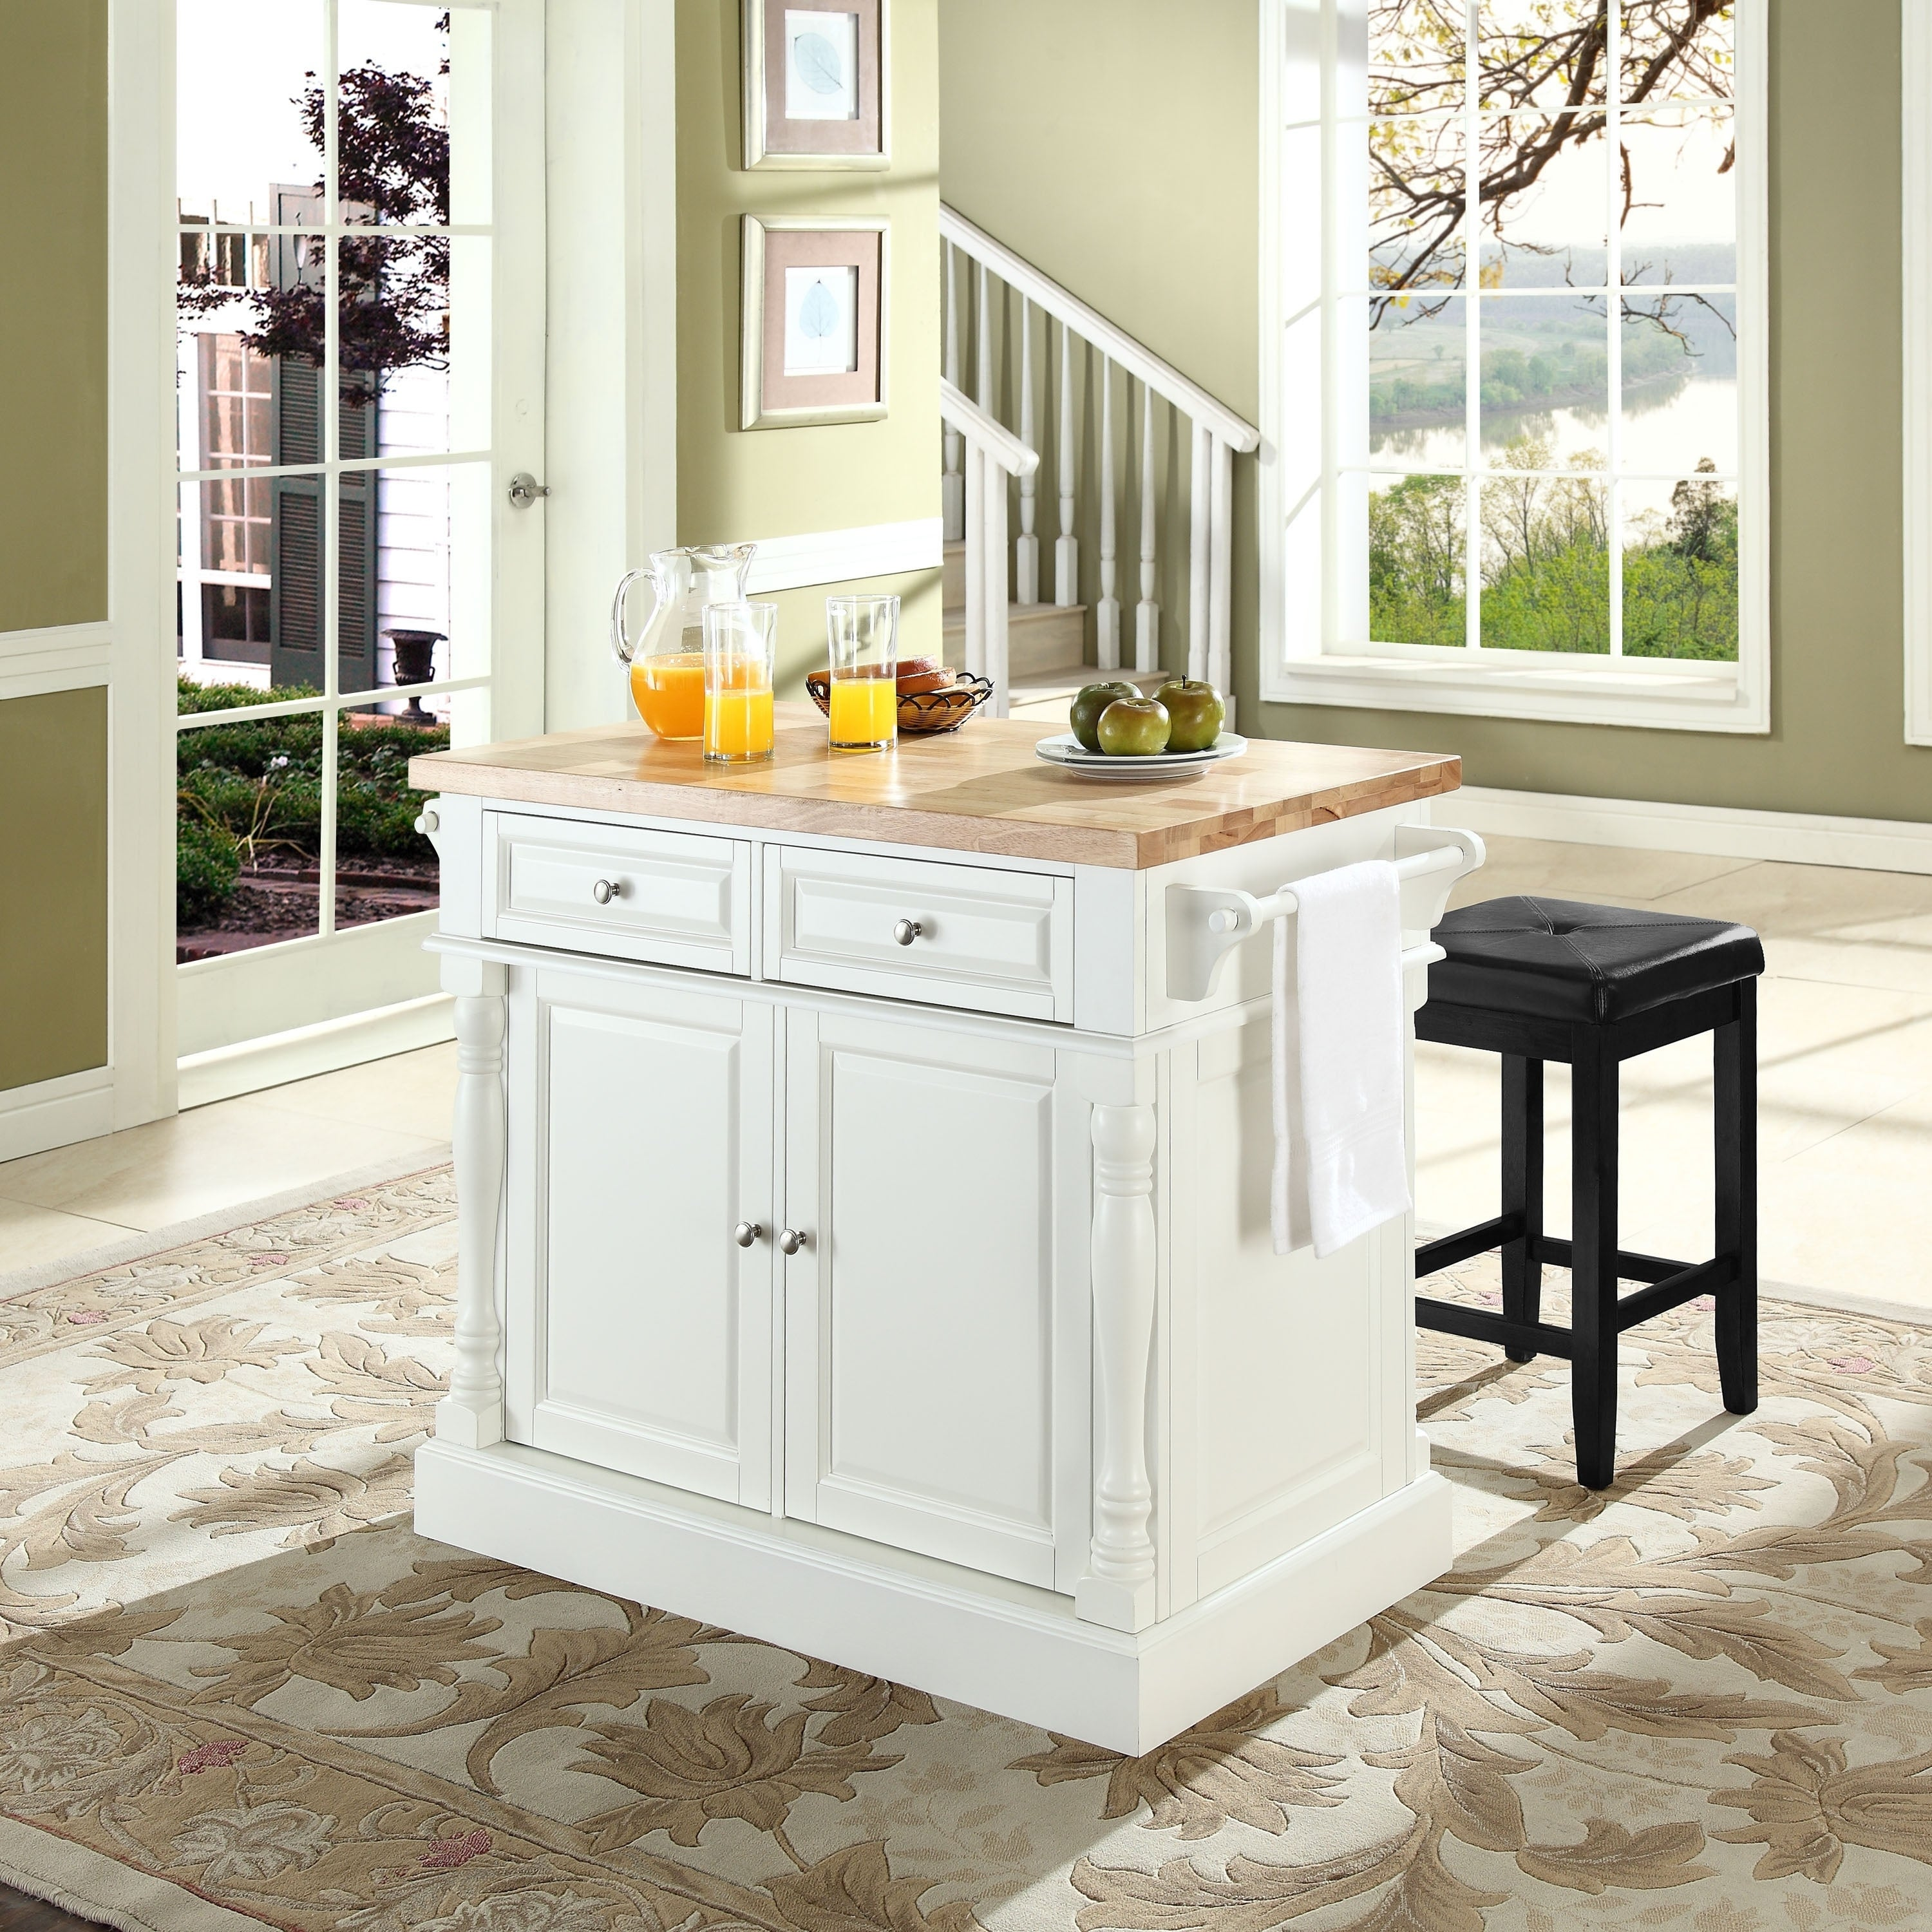 Shop Oxford Butcher Block Top Kitchen Island In White Finish With